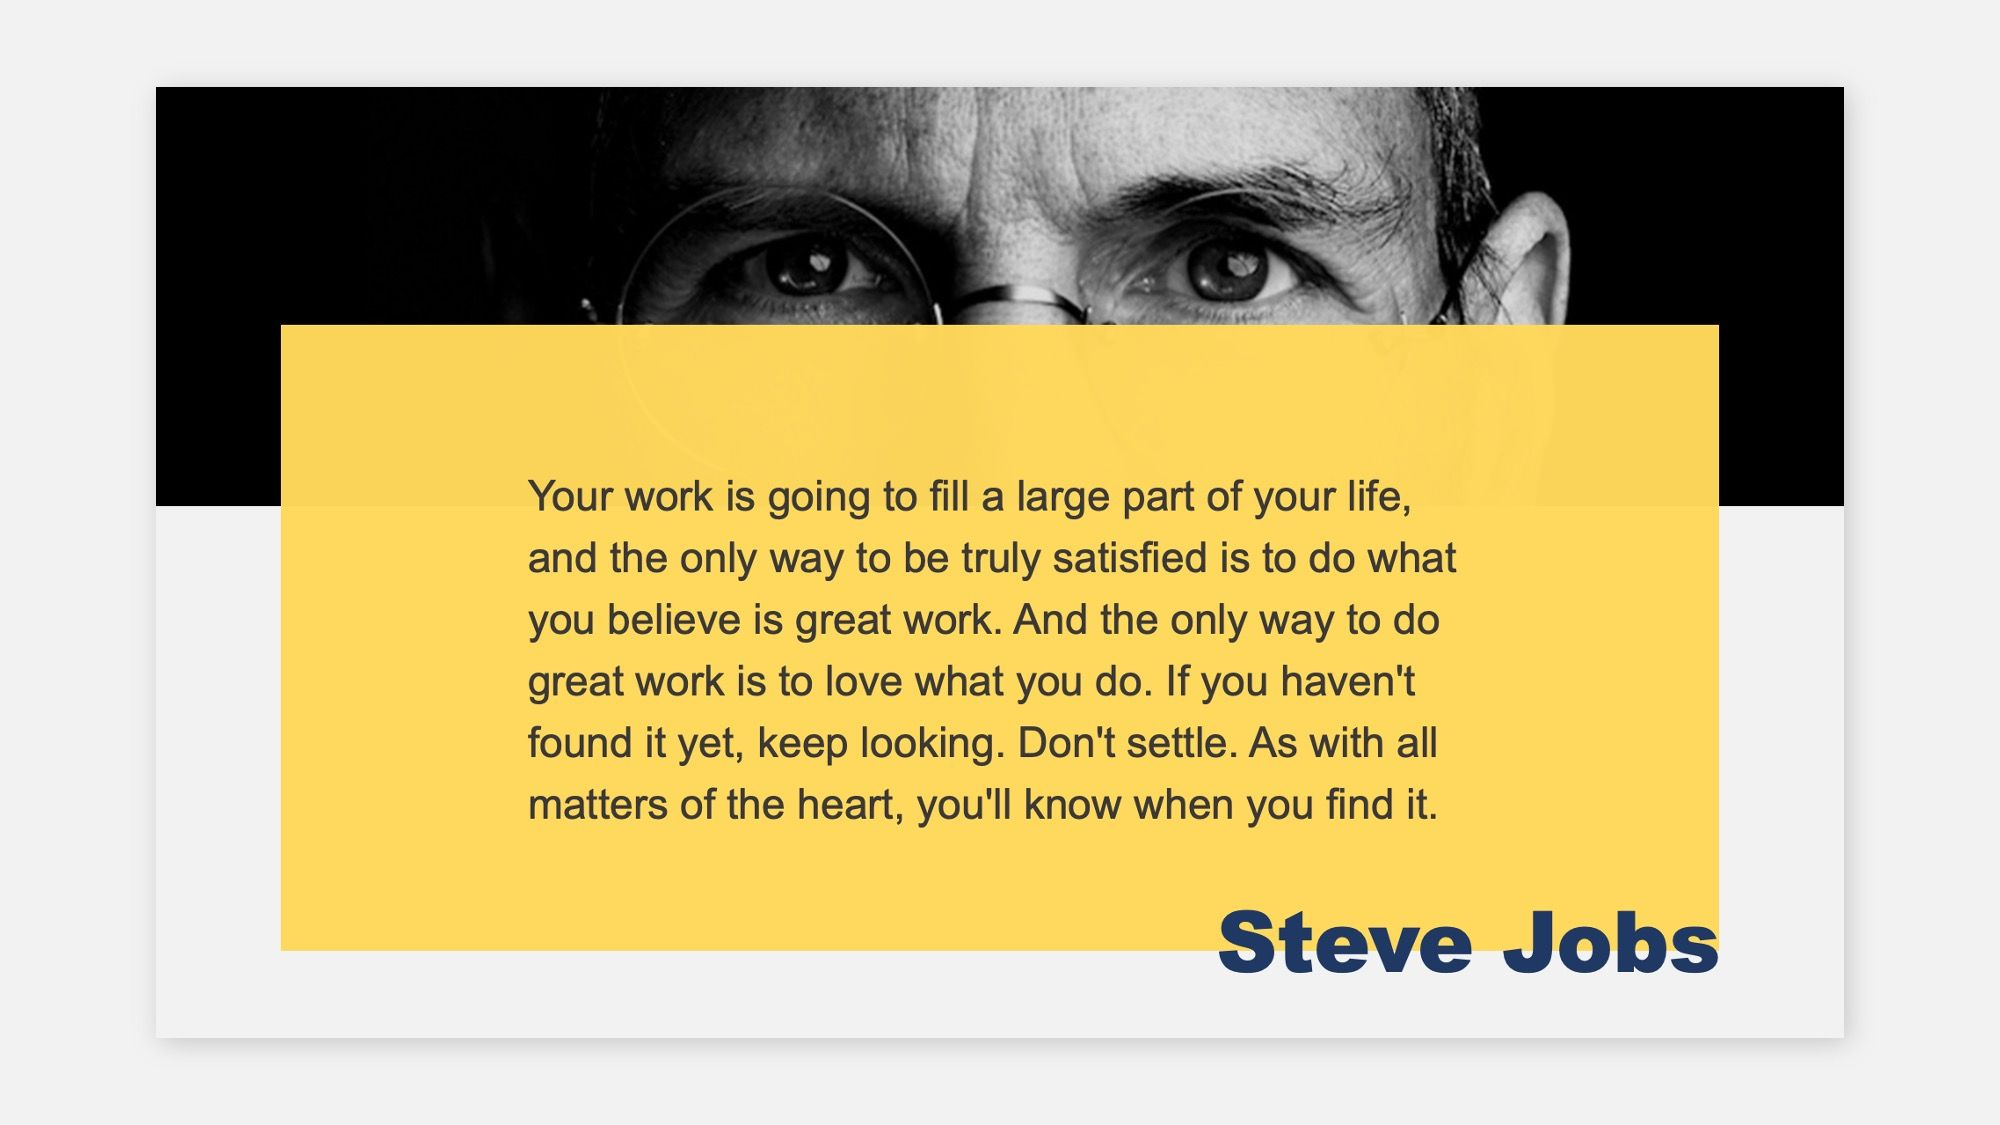 Customizable Powerpoint Presentation Template For Business Etsy Powerpoint Presentation Steve Jobs Quotes Creative Resume Templates